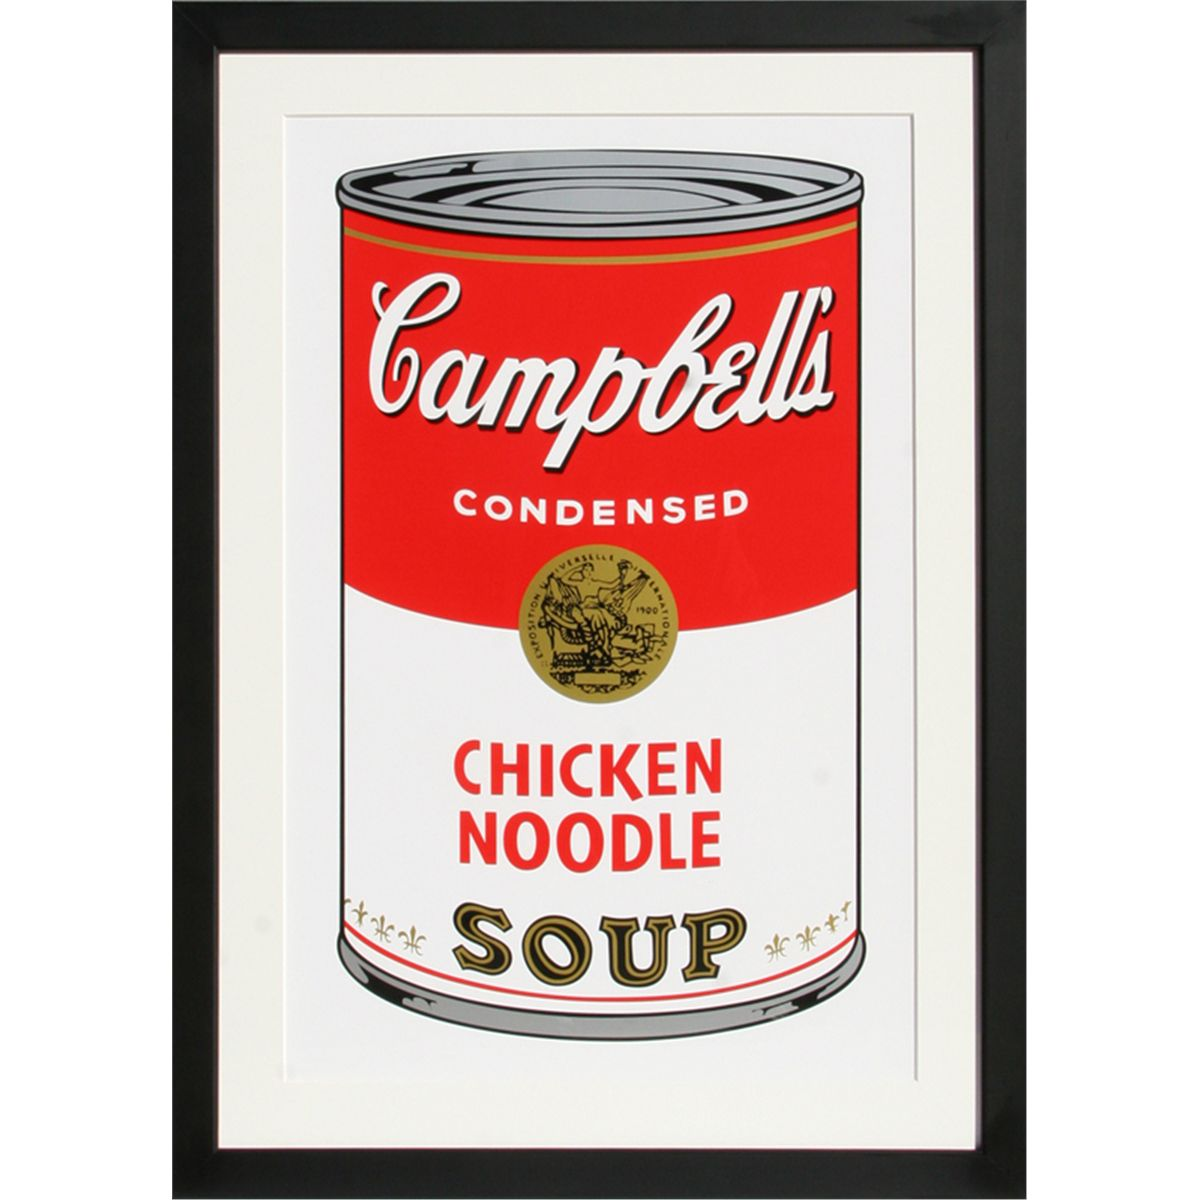 Andy Warhol, Campbell's Soup Can: Chicken Noodle, Serigraph